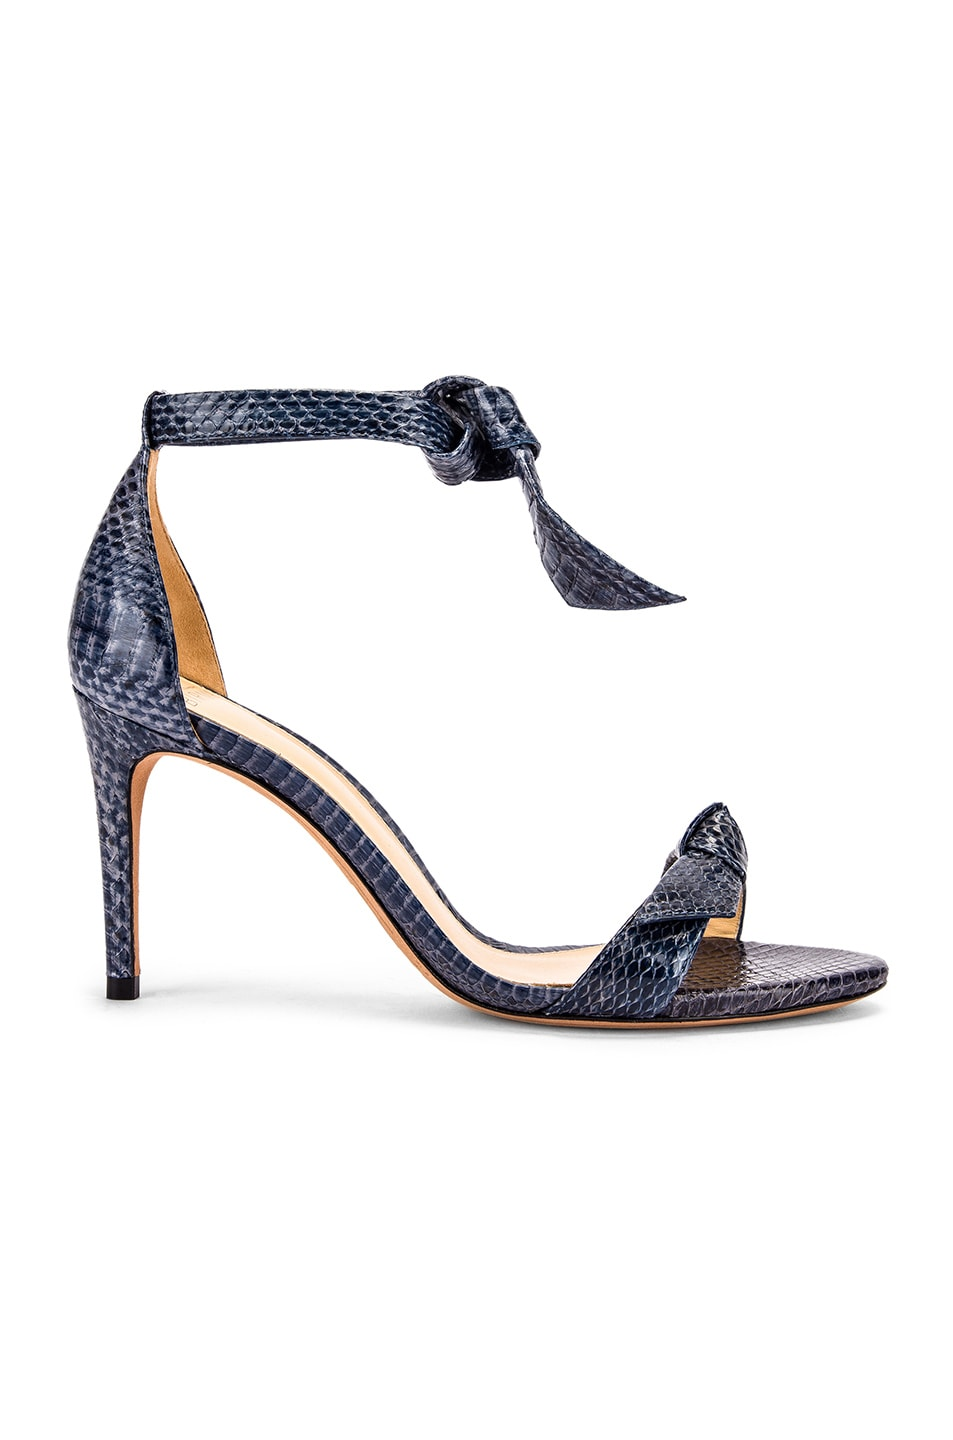 Image 1 of Alexandre Birman Clarita Ankle Strap Sandals in Marine